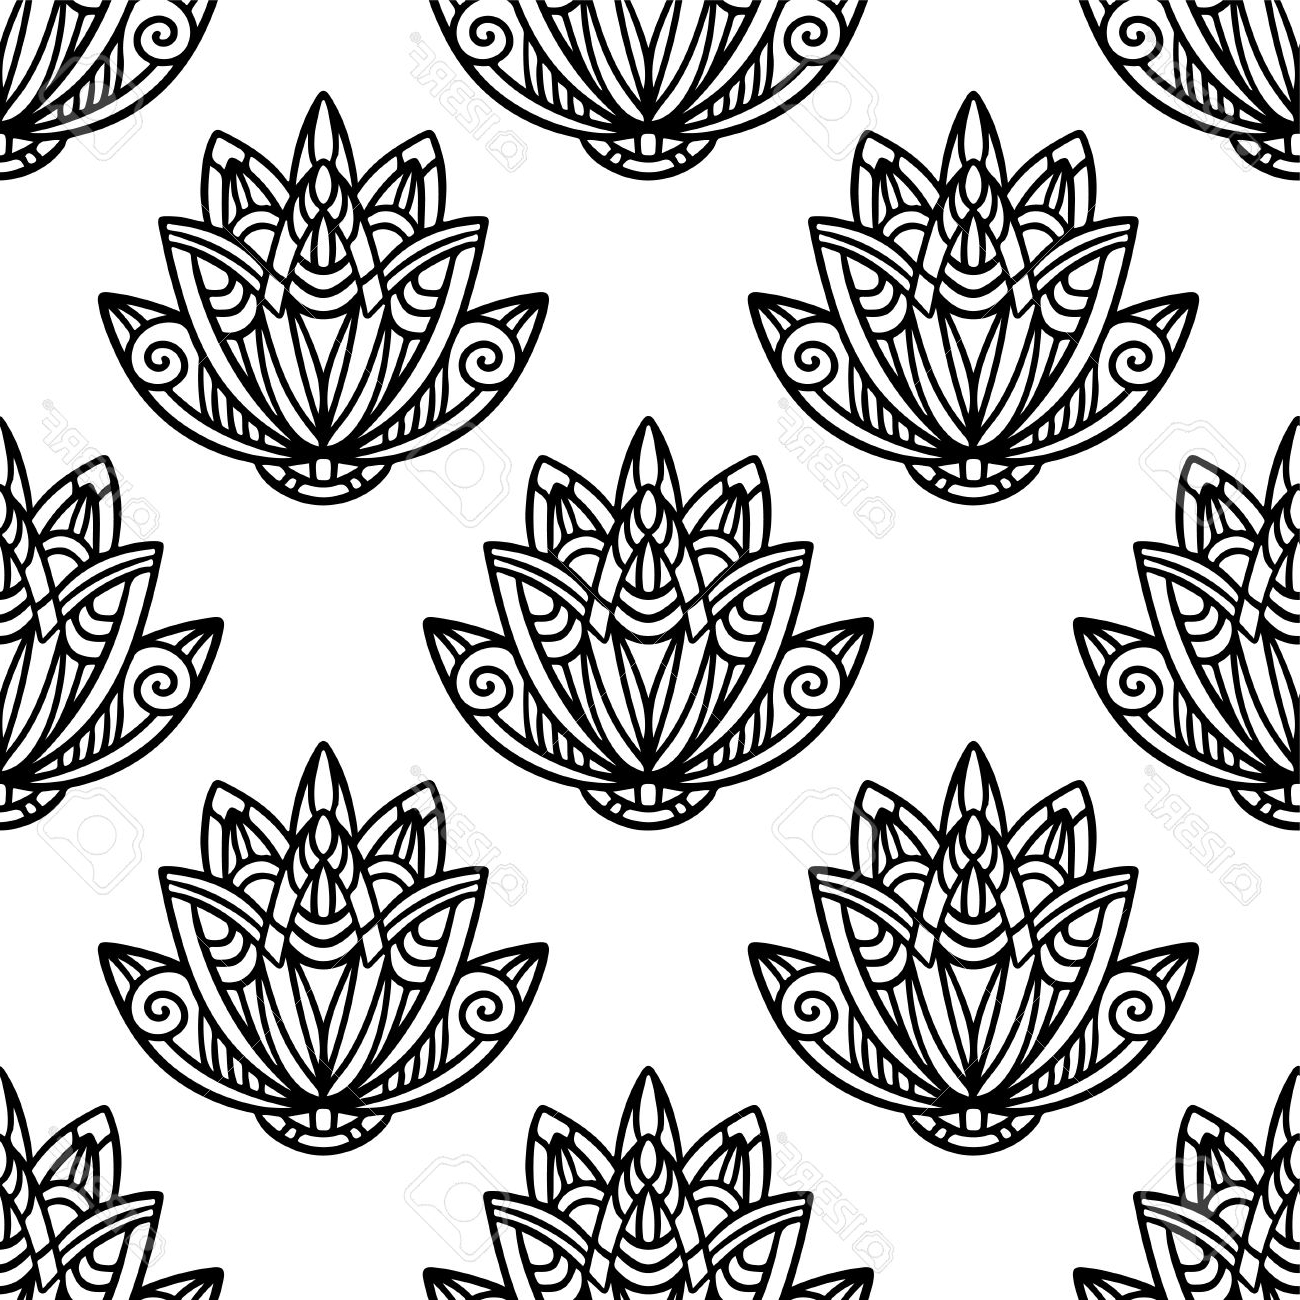 1300x1300 Simple Abstract Flower Drawings Clipart